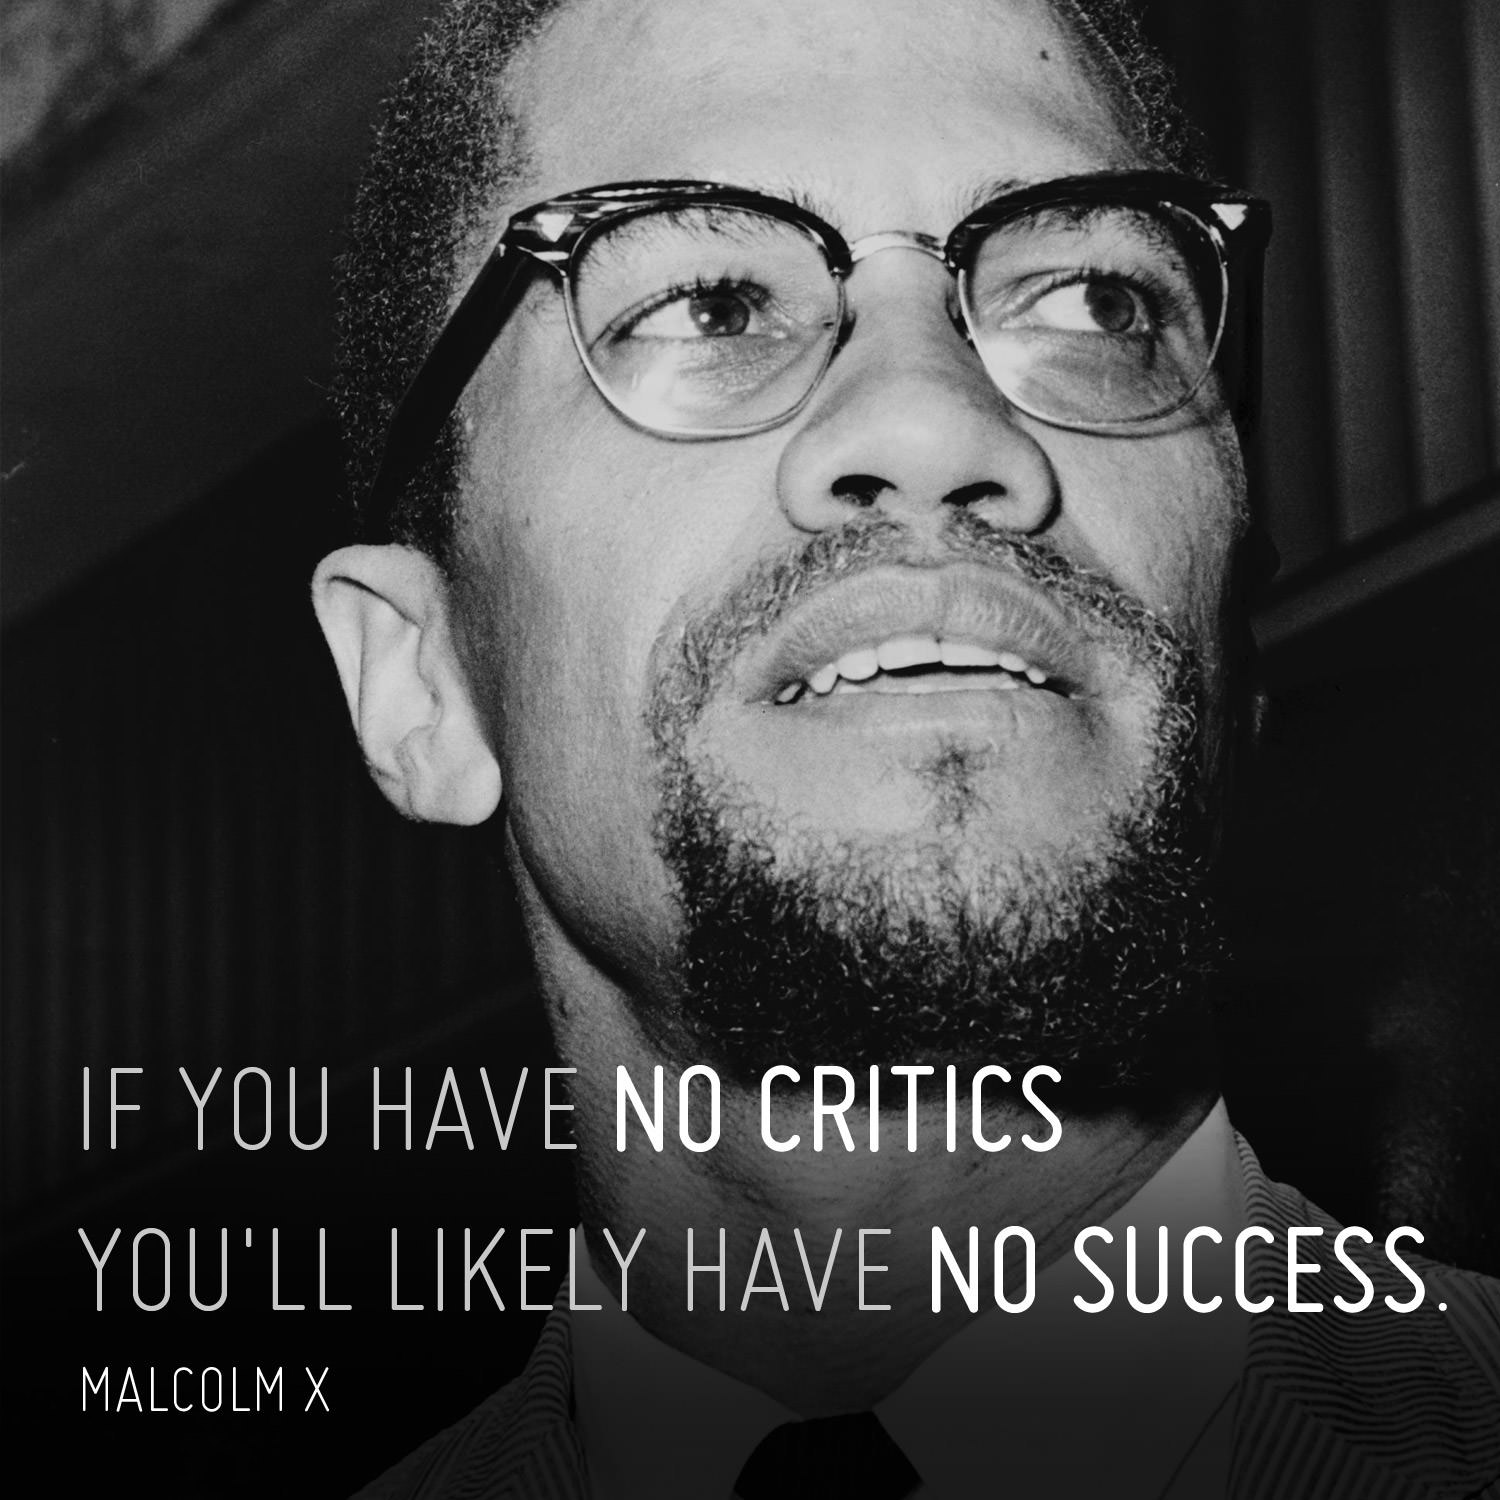 If you have no critics you'll likely have no success. - Malcolm X